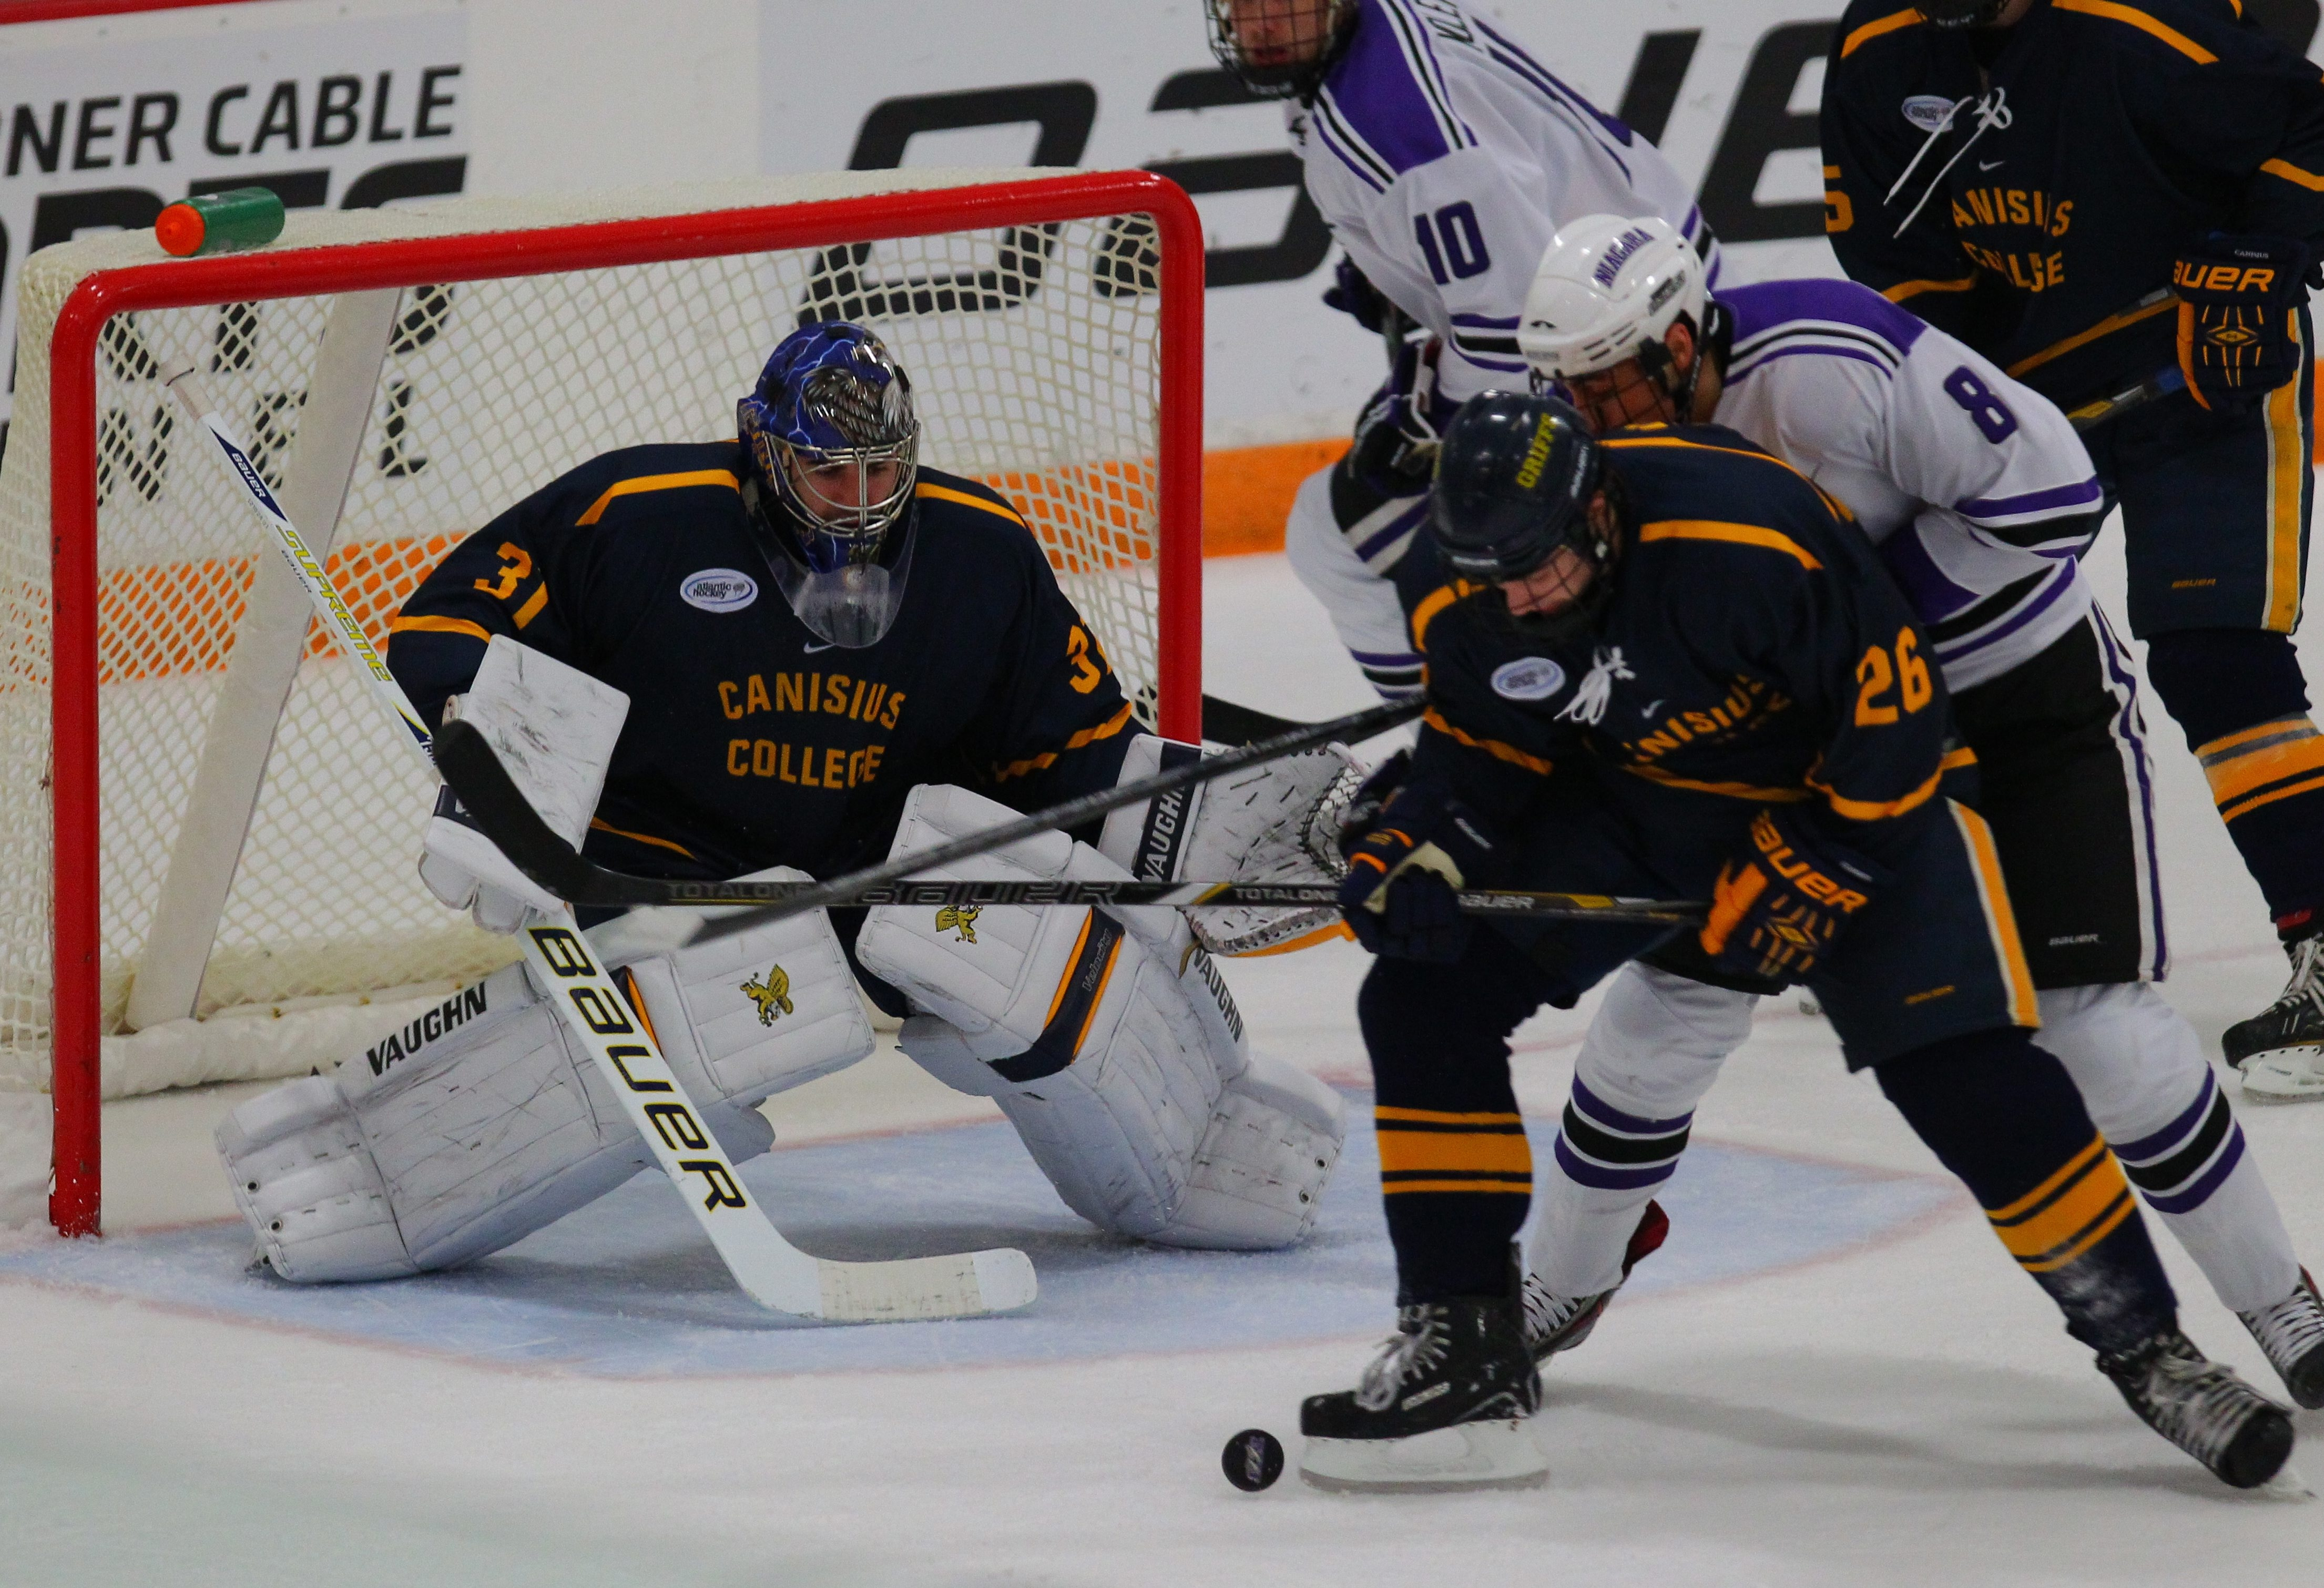 Senior goaltender Tony Capobianco takes an 8-0-0 playoff record into this weekend's series at Bentley.  owns several school records for Canisius College.